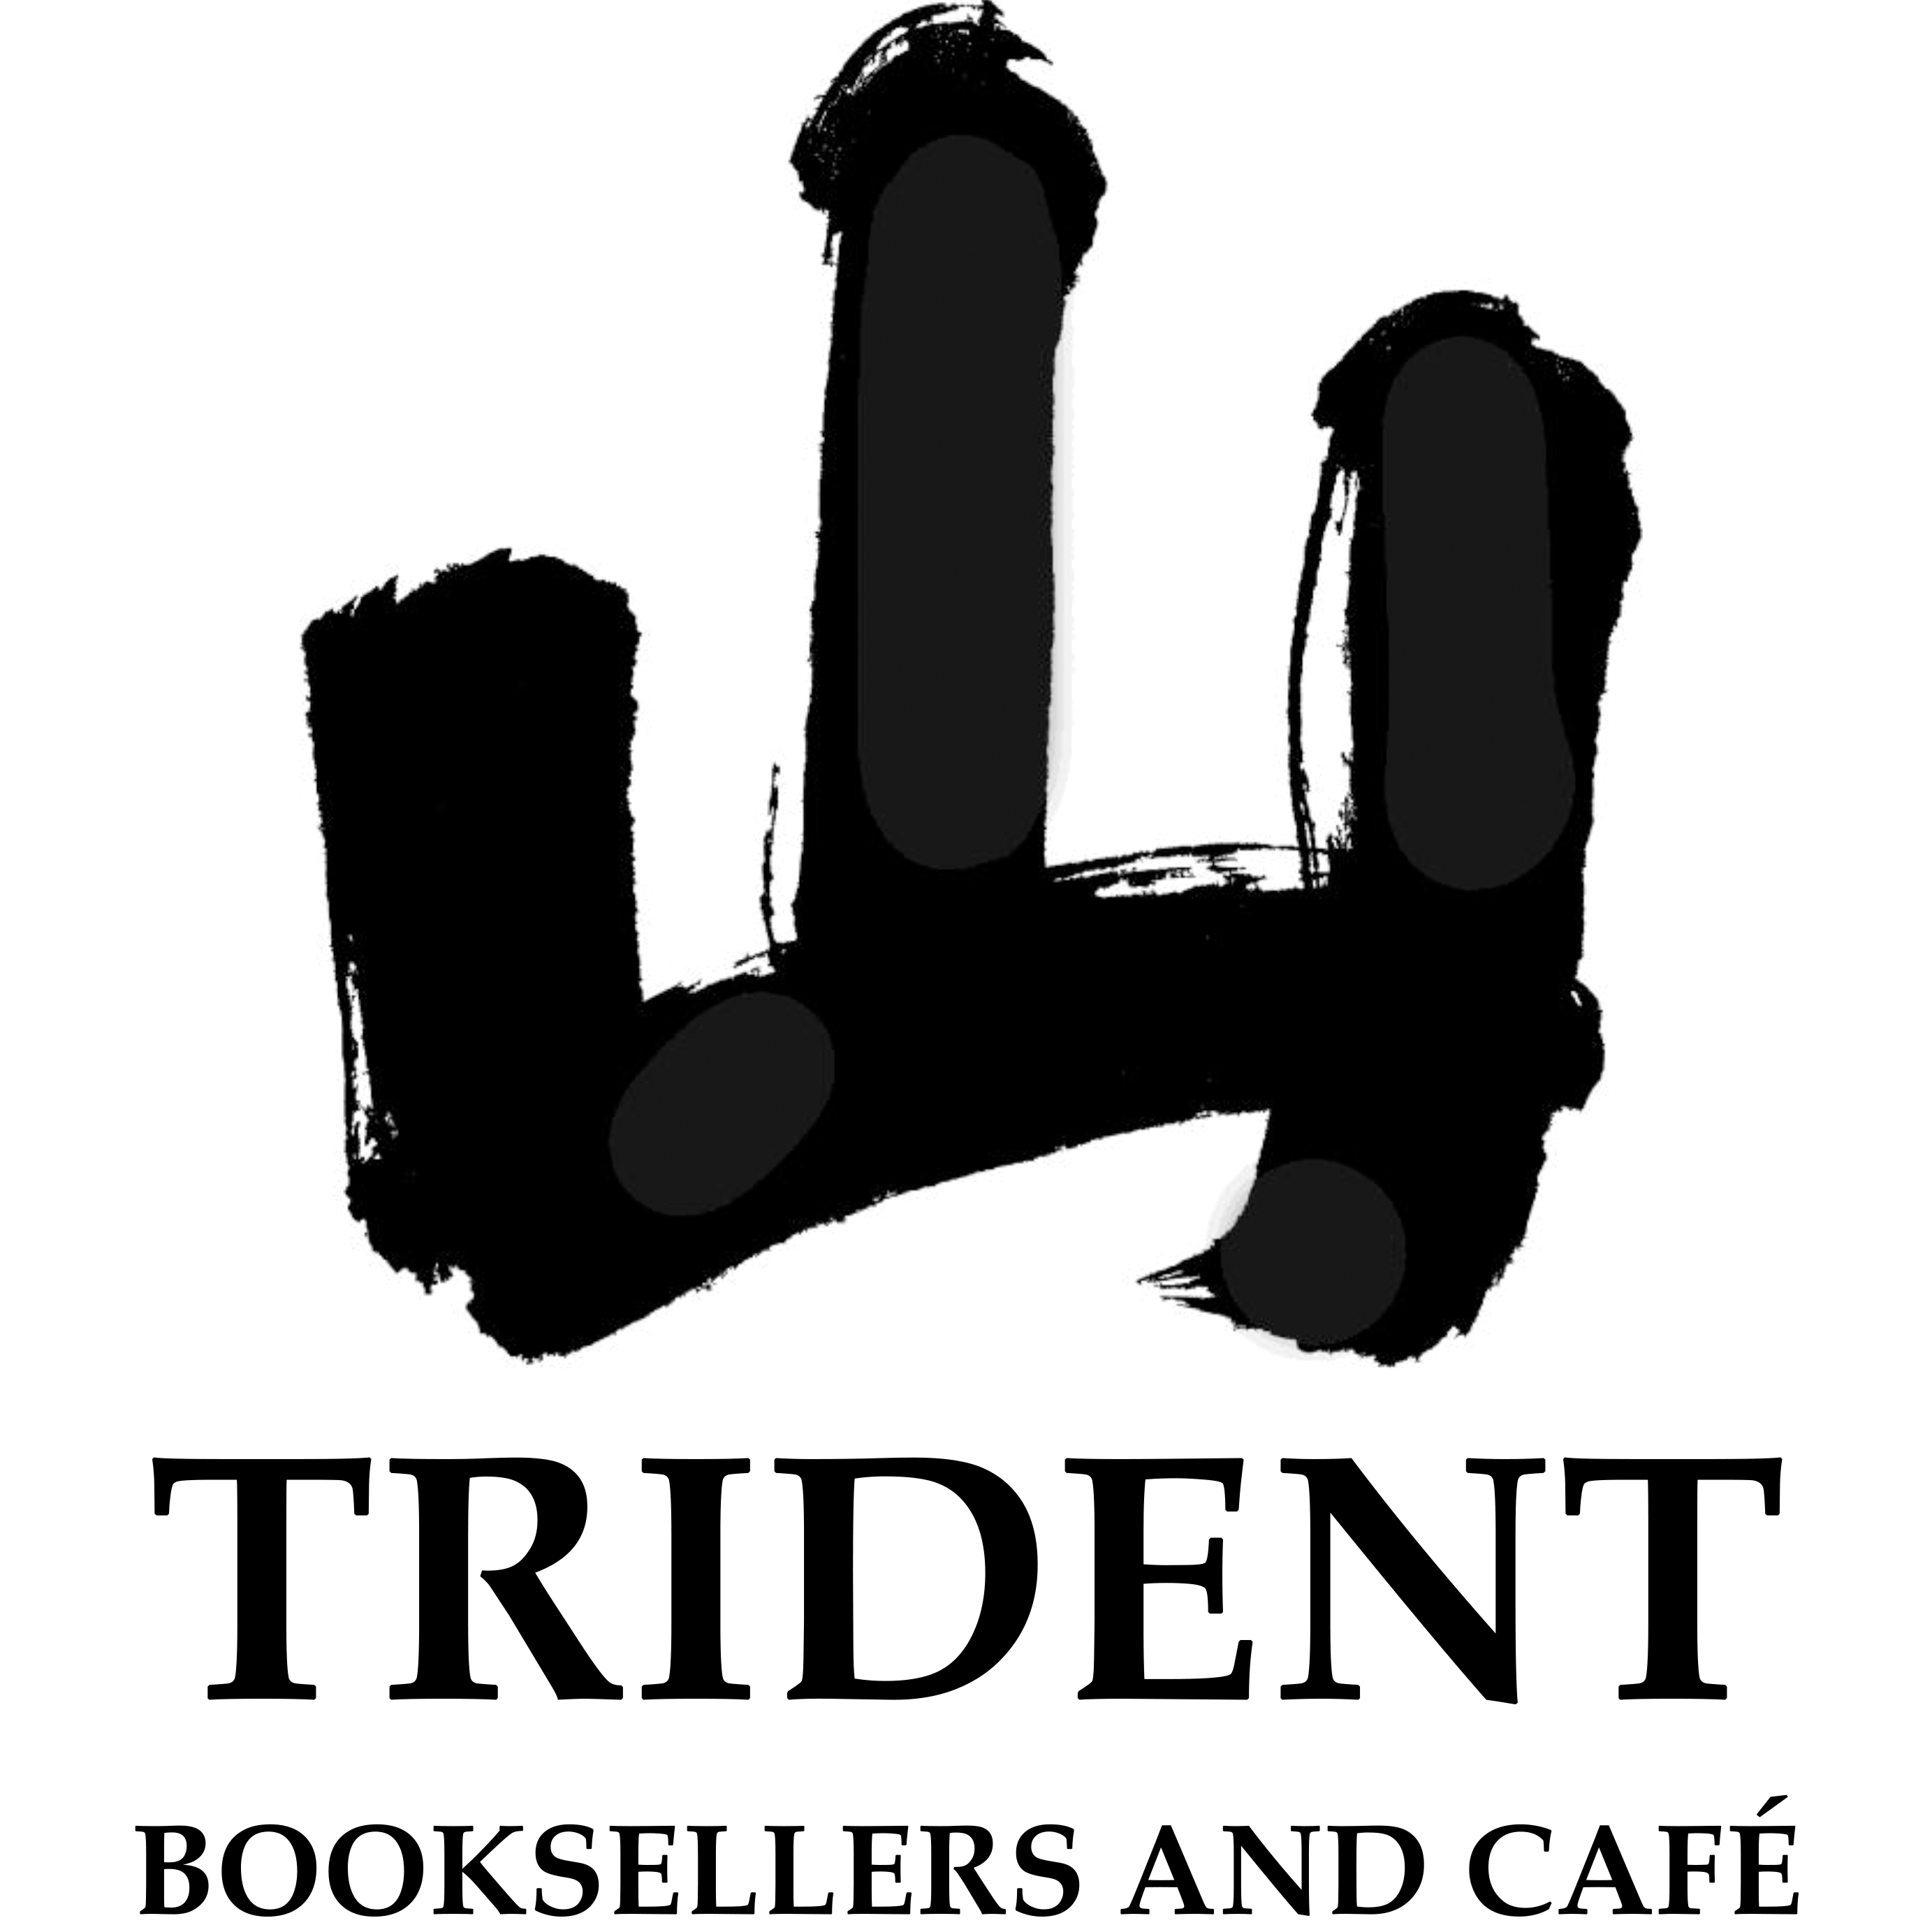 Trident Cafe and Booksellers logo